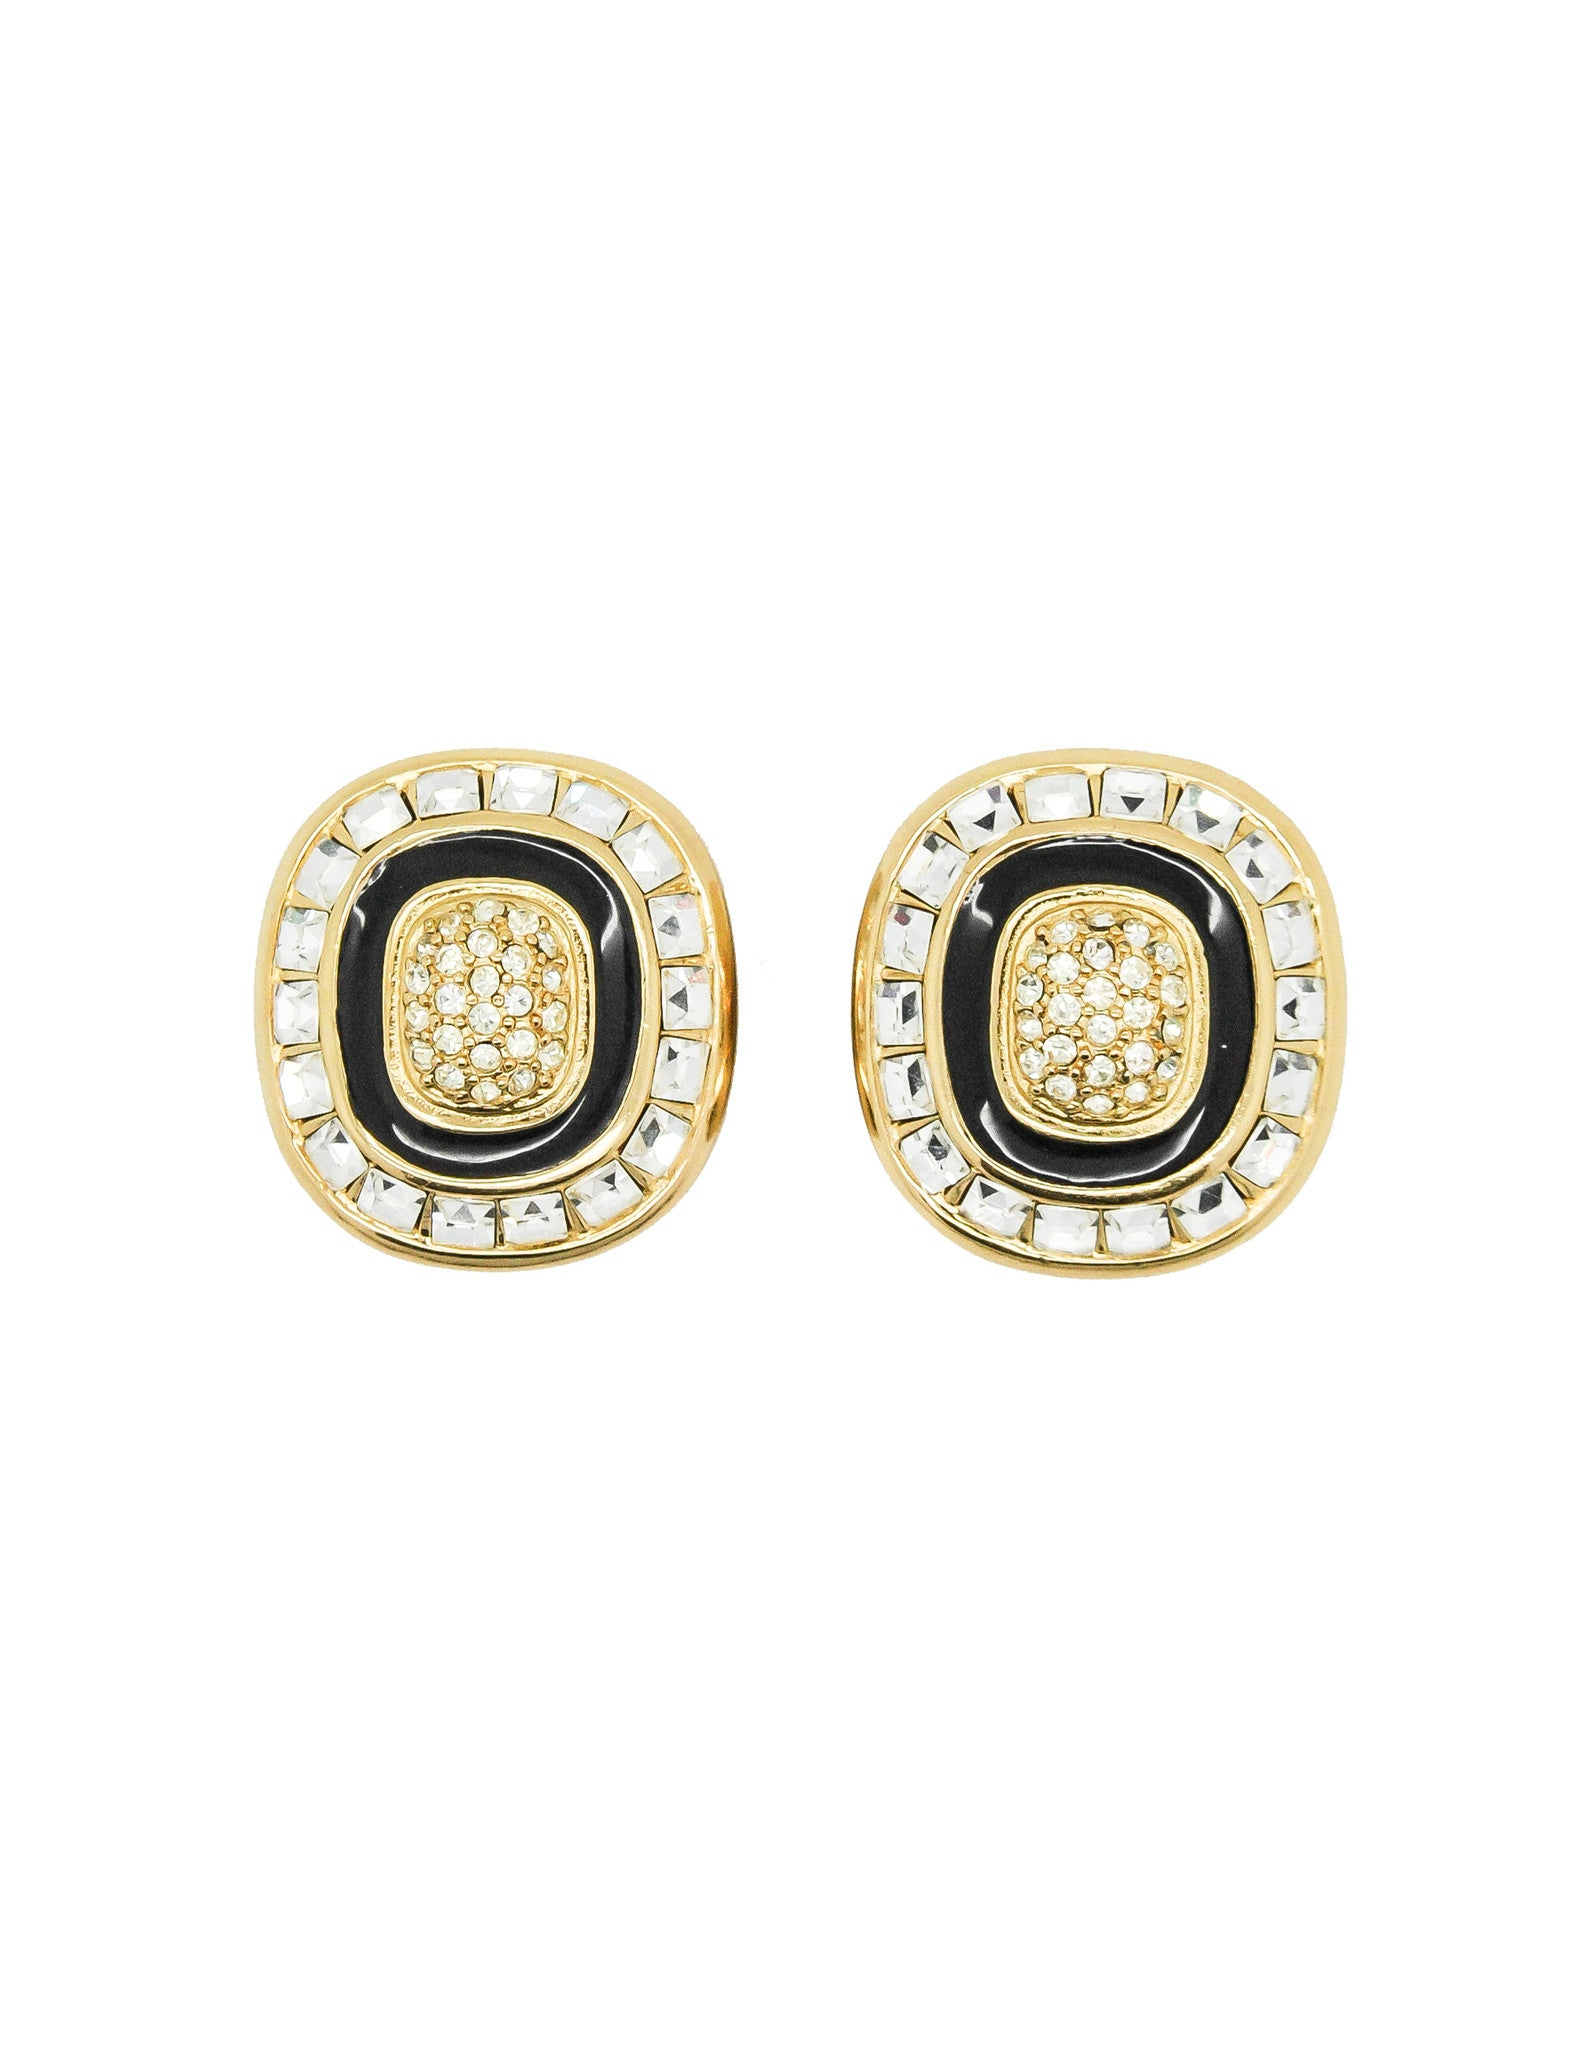 Christian Dior Vintage Diamante Enamel Earrings - Amarcord Vintage Fashion  - 1